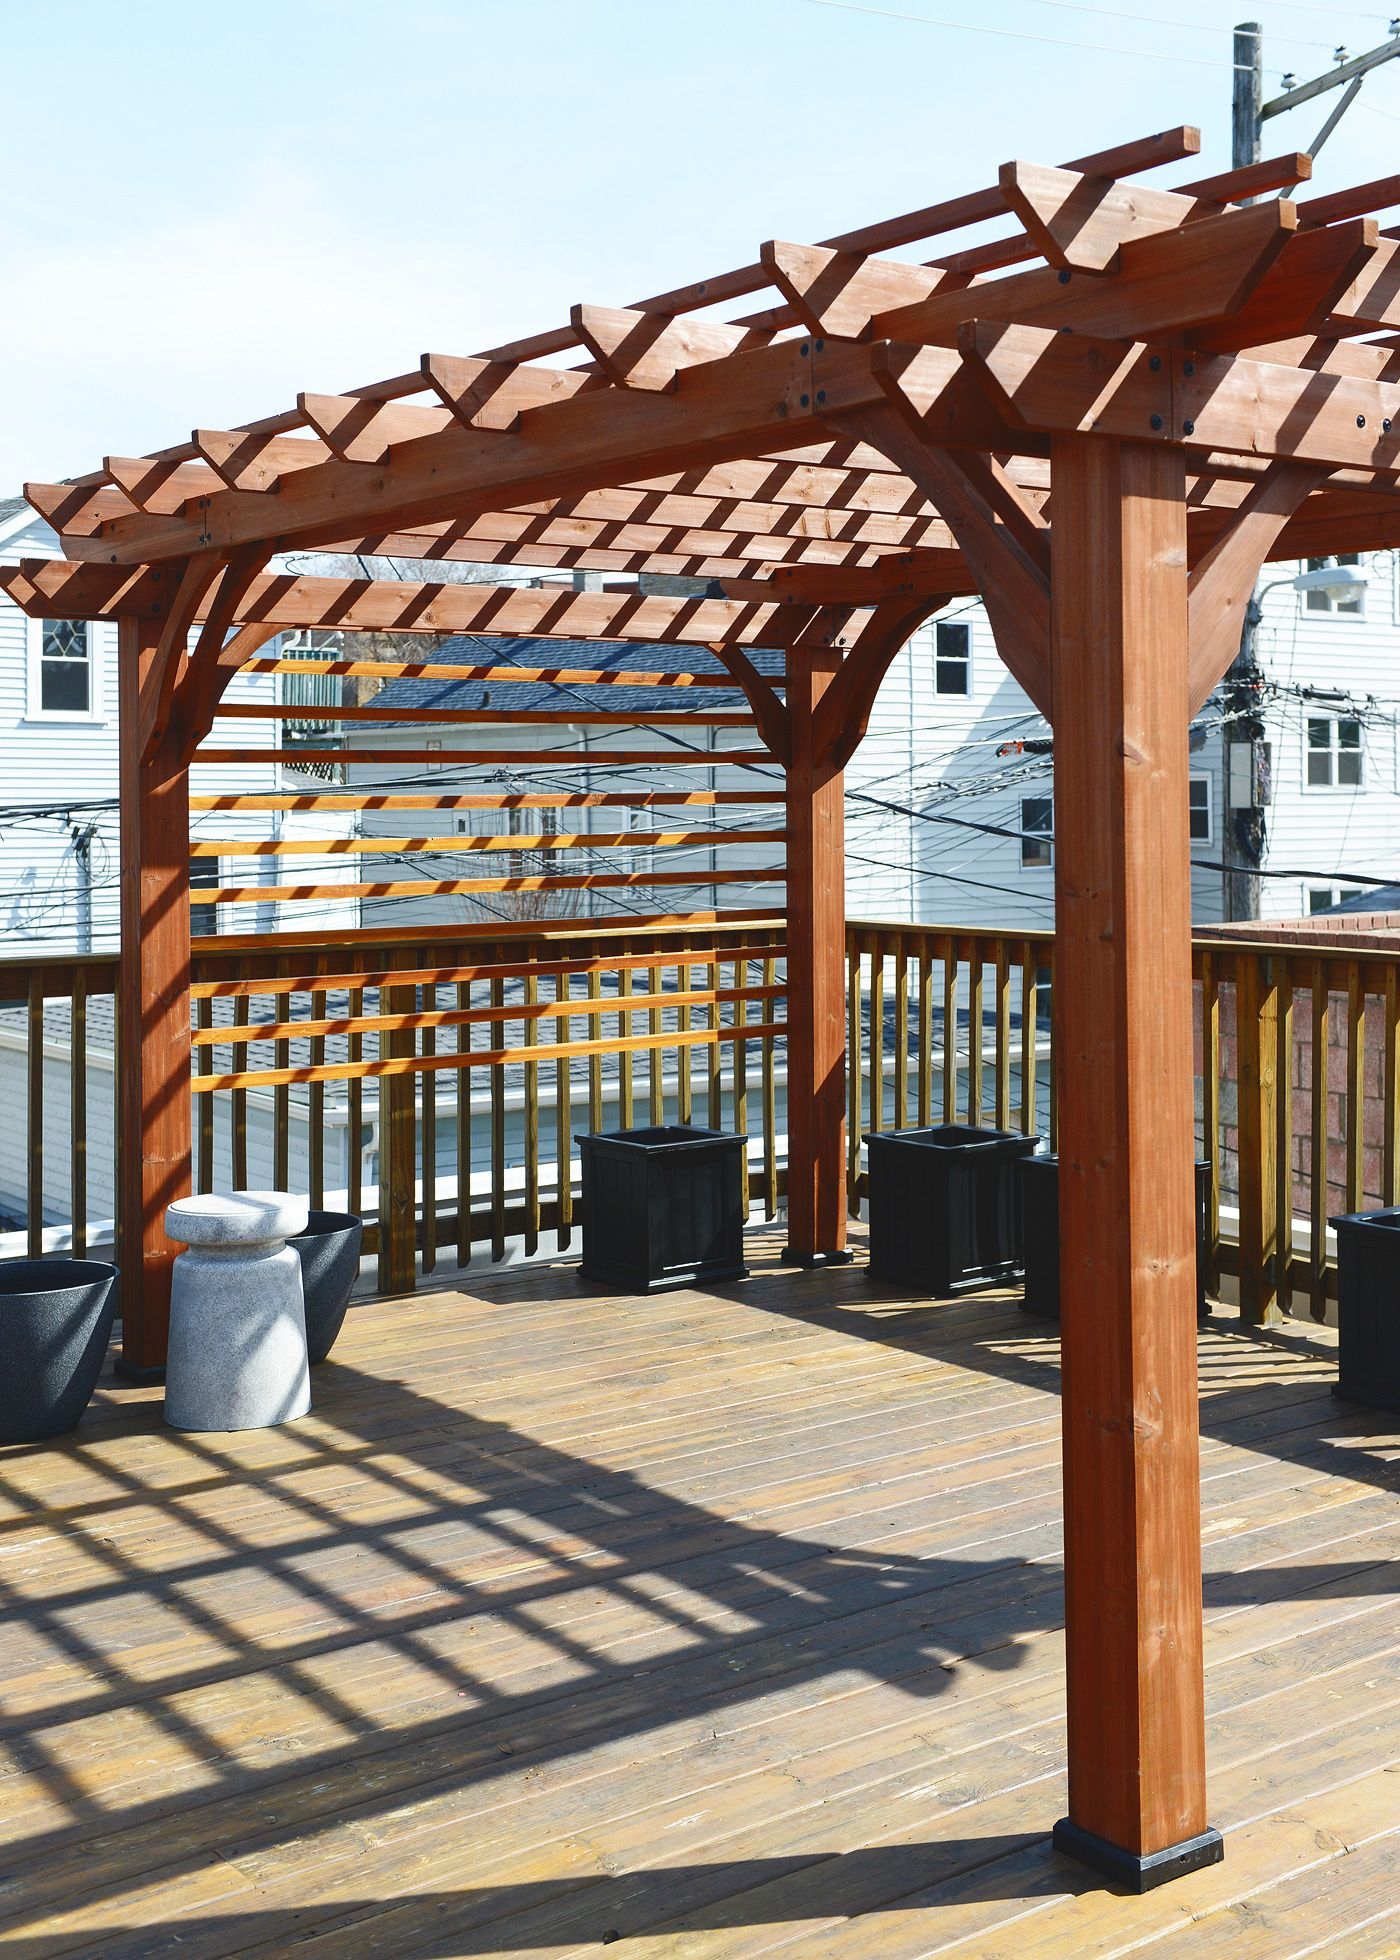 Let's Build a Pergola! (With images) Pergola